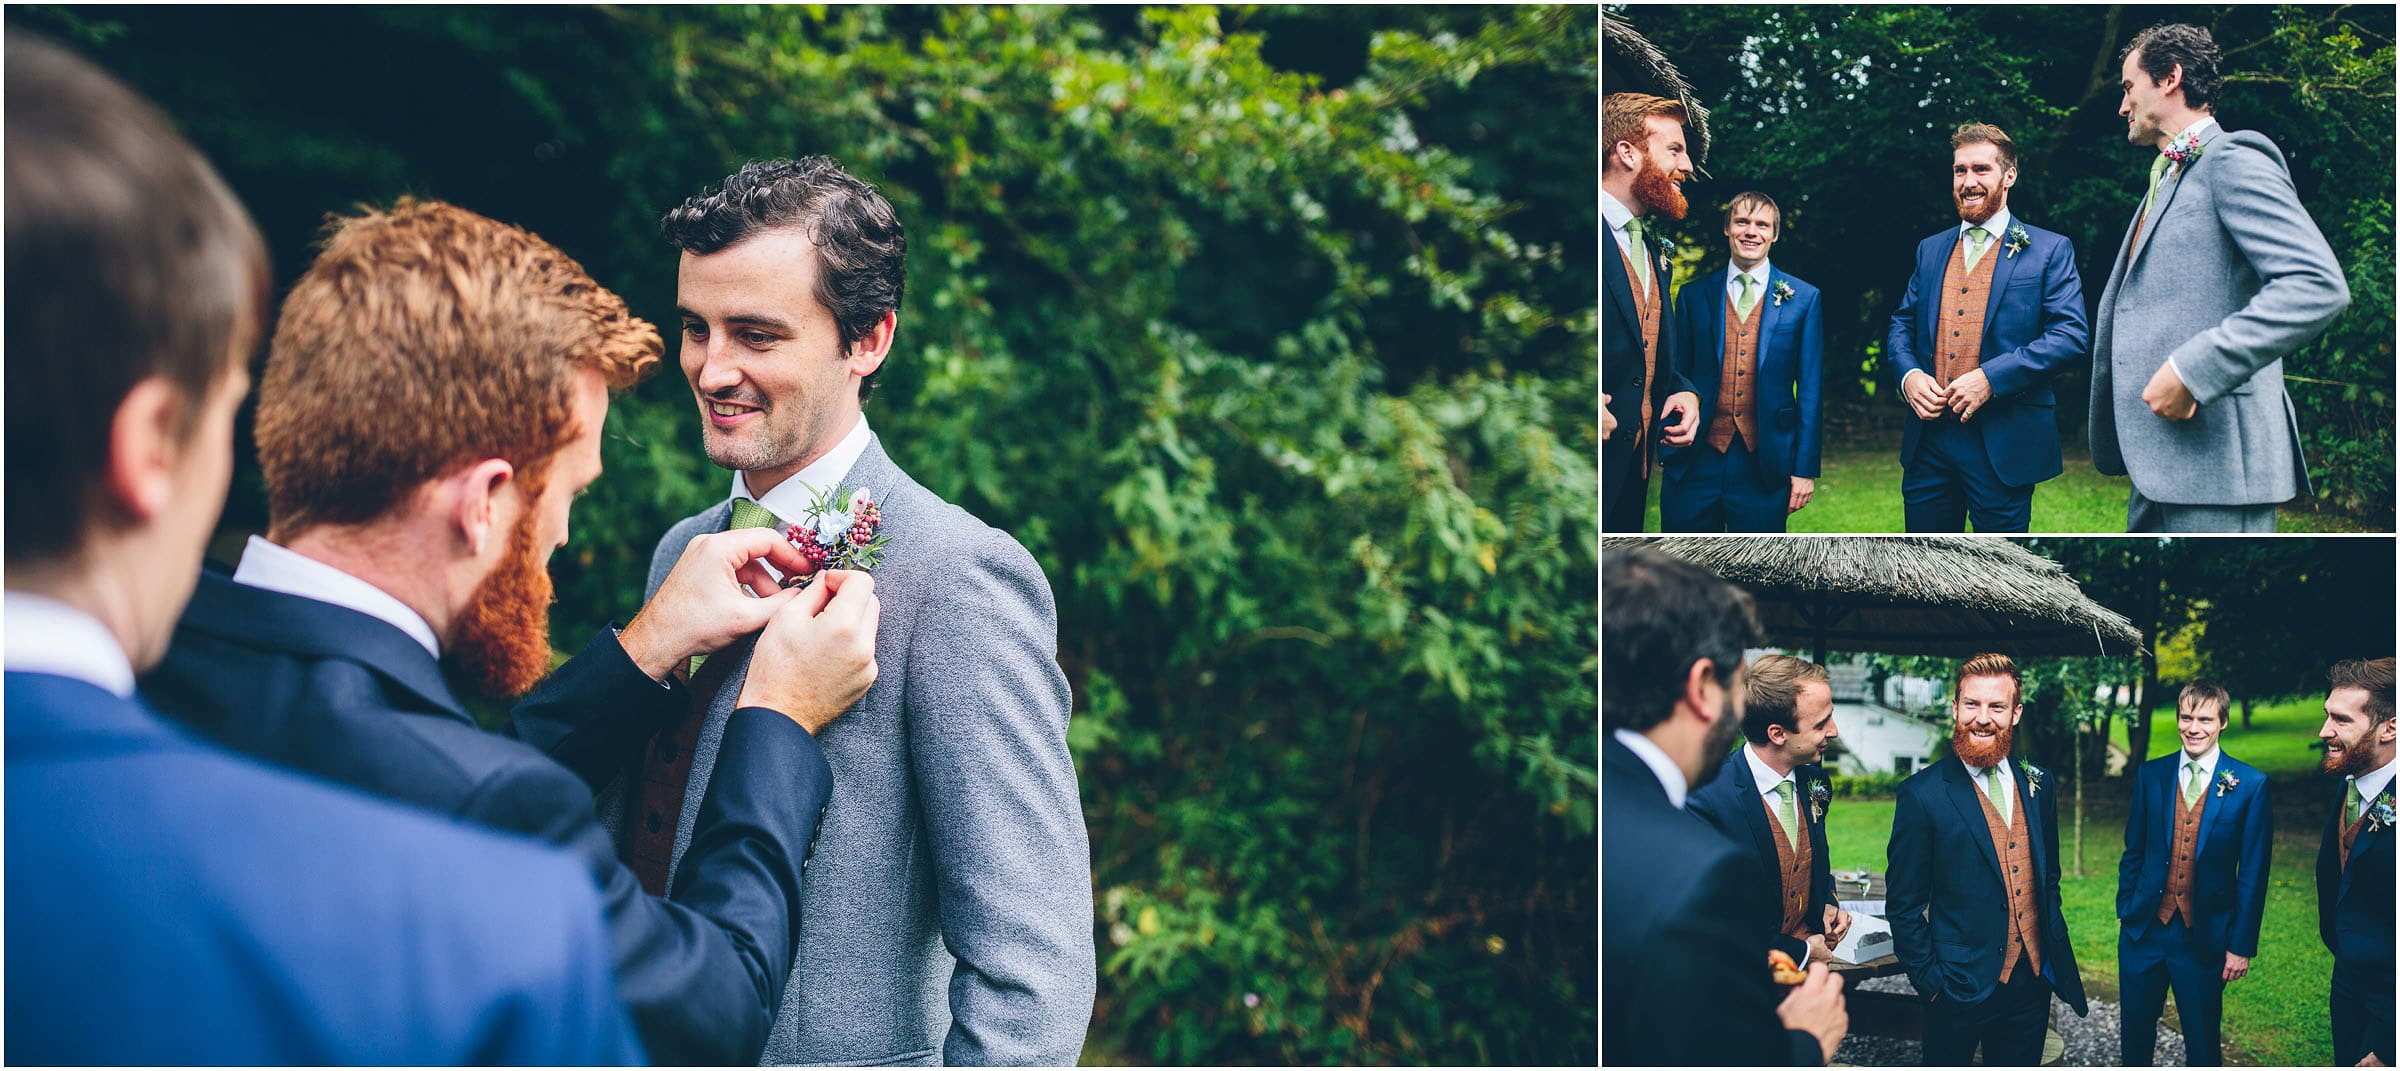 Harthill_Weddings_Wedding_Photography_0015